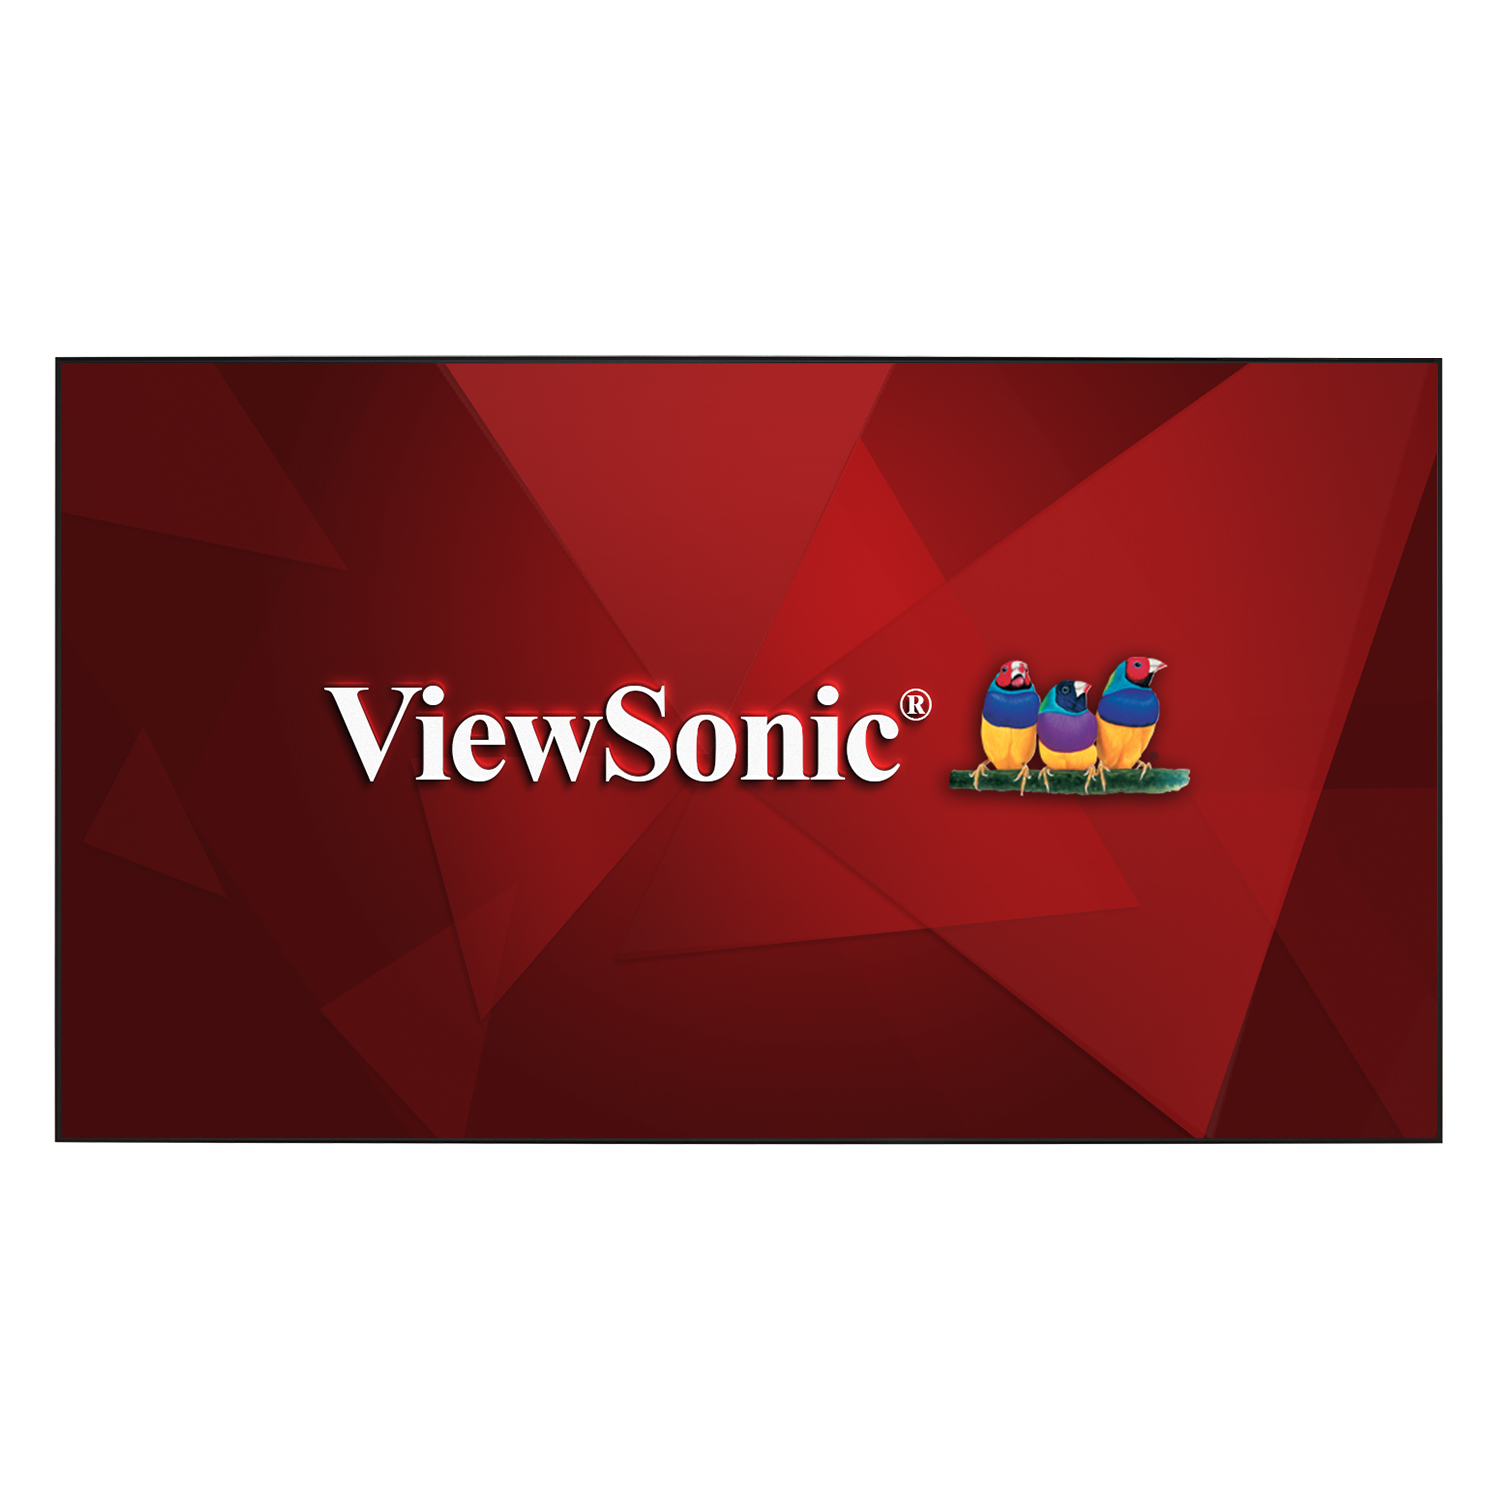 ViewSonic BCP100 100in. 16:9 Ultra-Short Throw Projector Screen